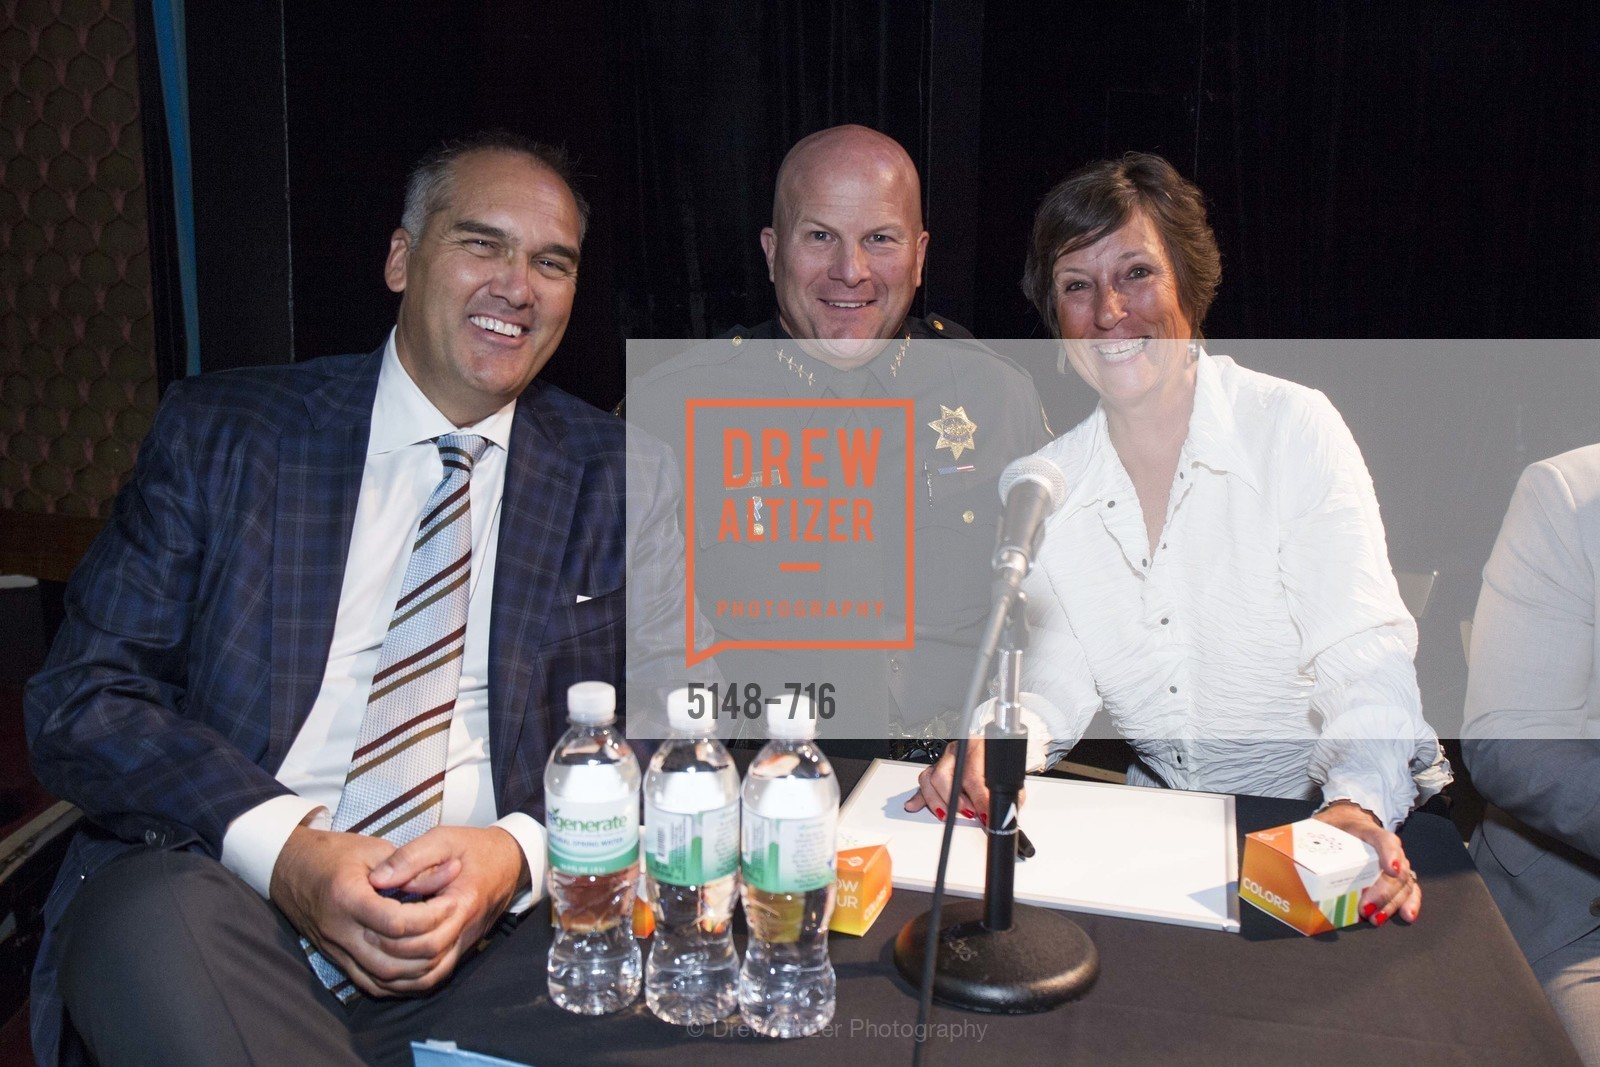 Paul Wible, Greg Suhr, Terry Cort, READING PARTNERS BAY AREA Celebrity Spelling Bee, US, May 8th, 2015,Drew Altizer, Drew Altizer Photography, full-service agency, private events, San Francisco photographer, photographer california